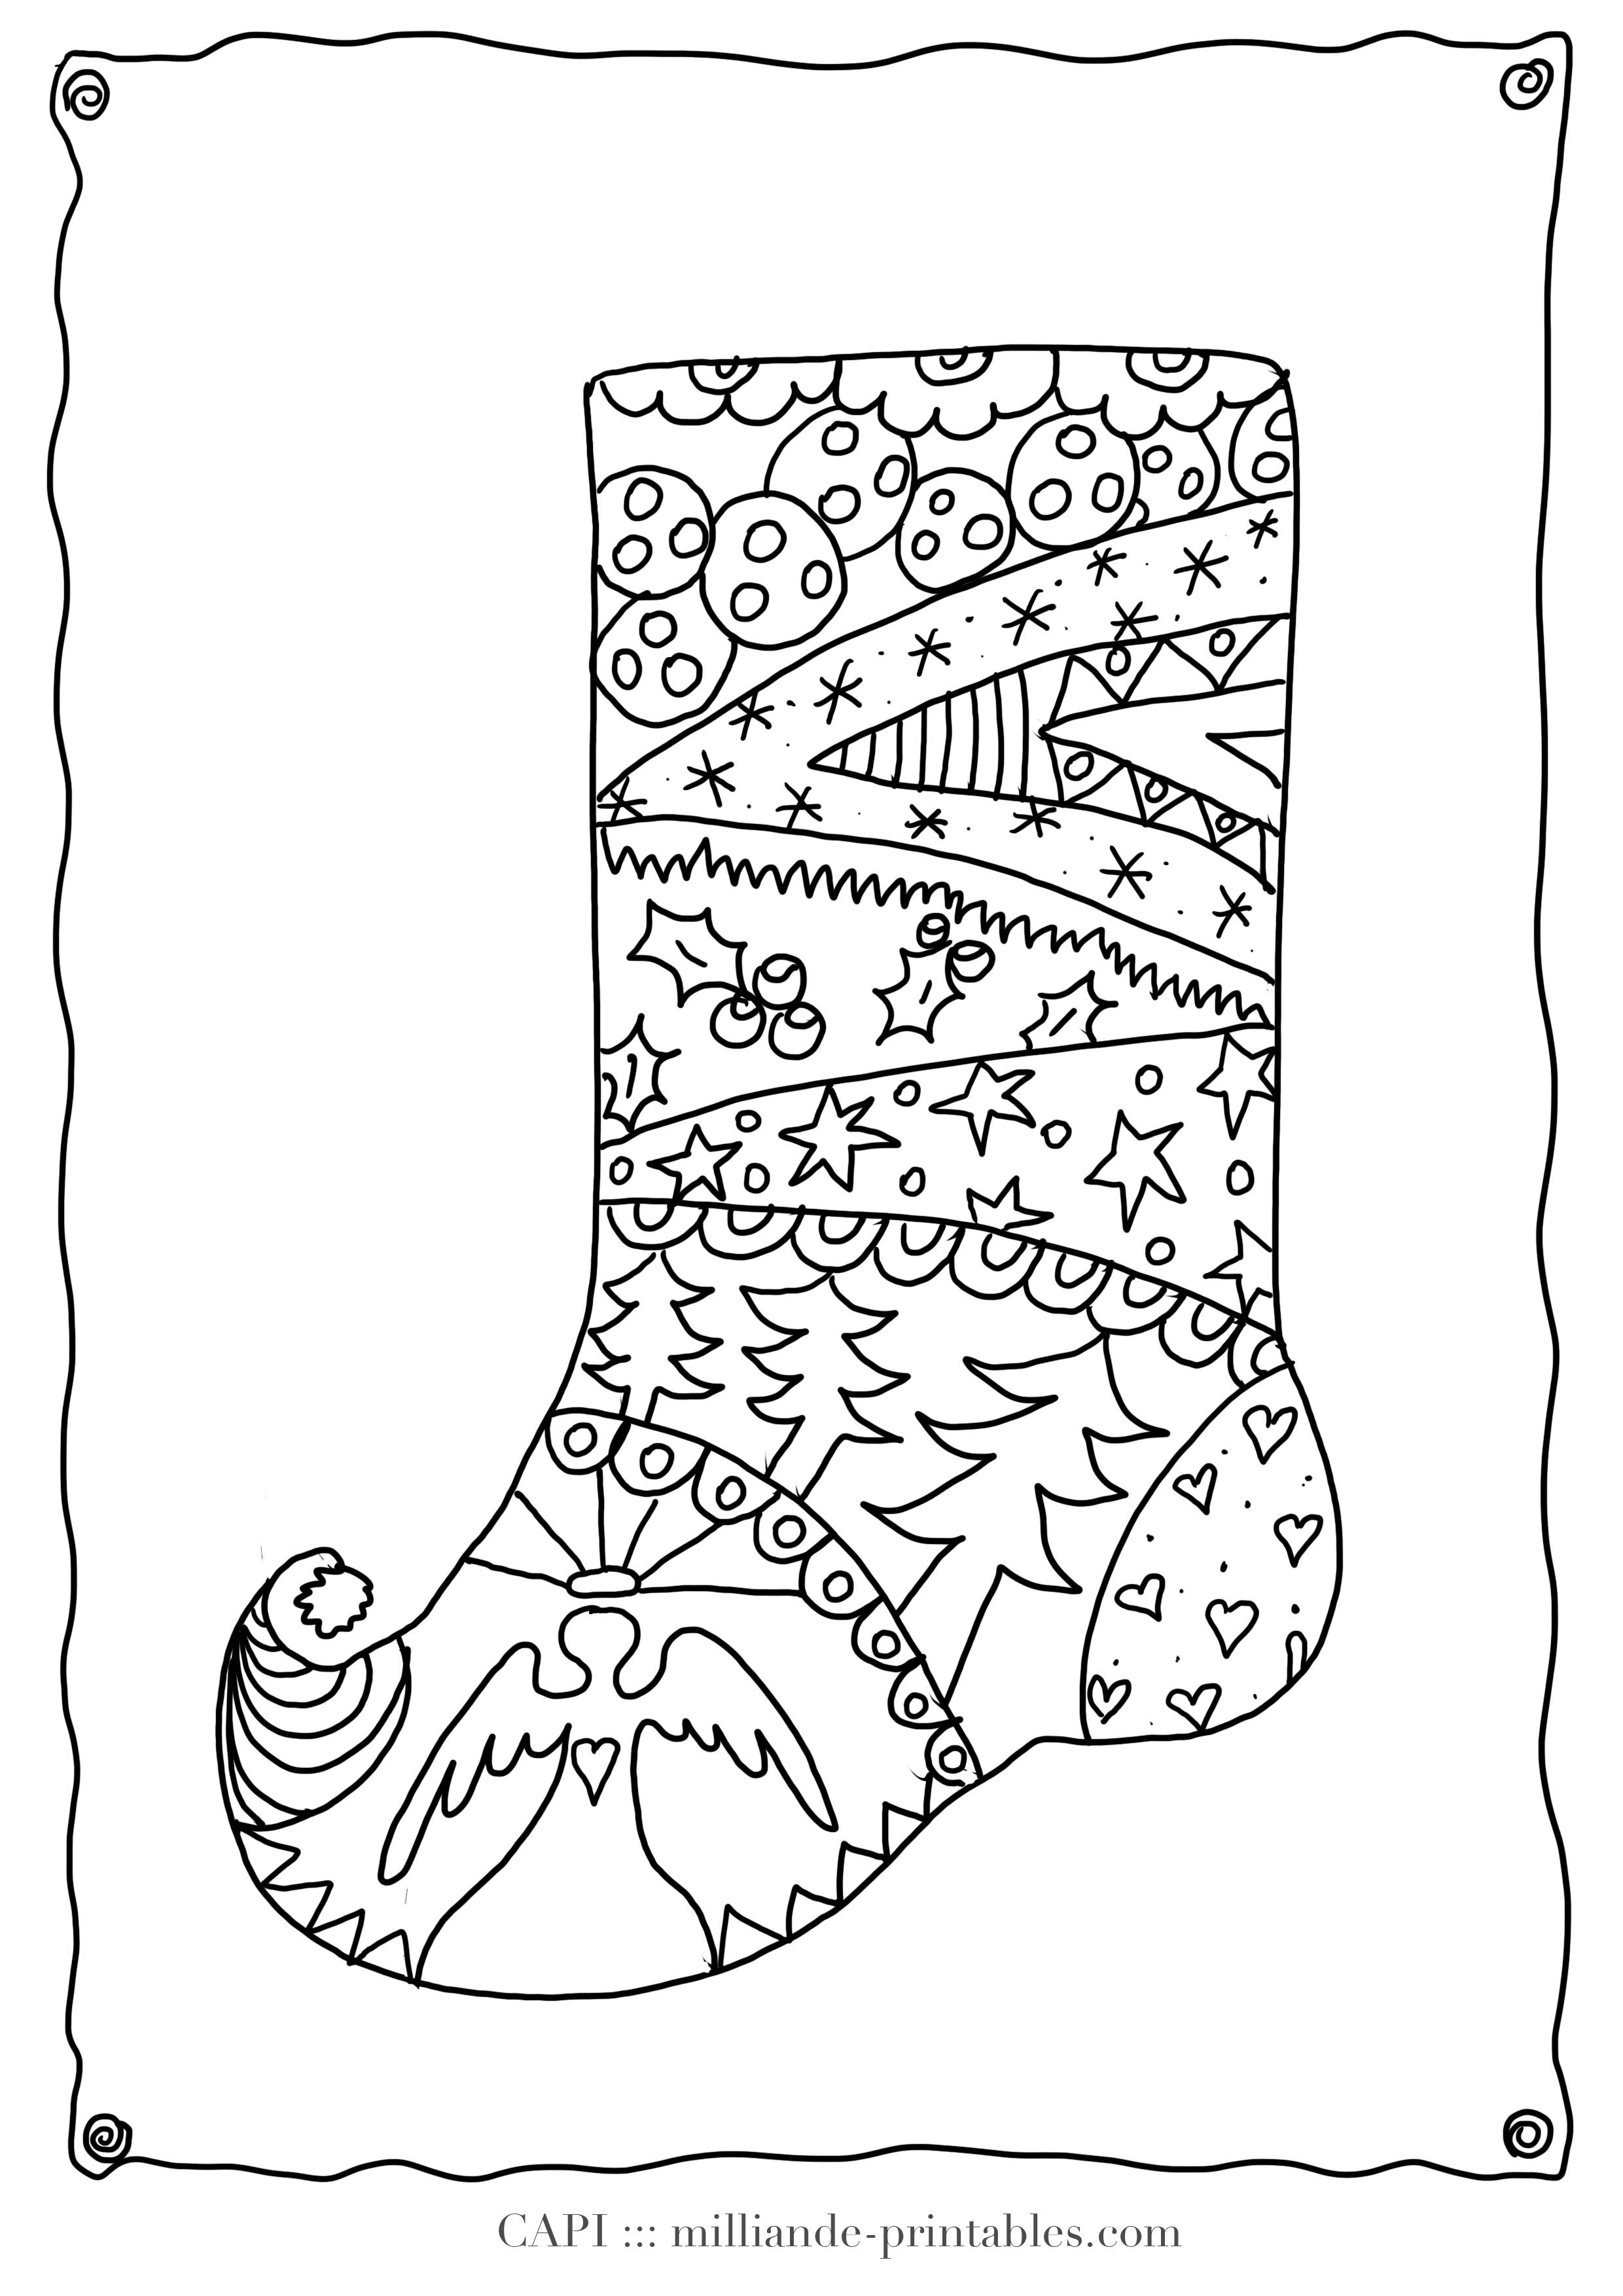 Christmas Coloring Borders Pages With Detailed Bing Images Design Pinterest